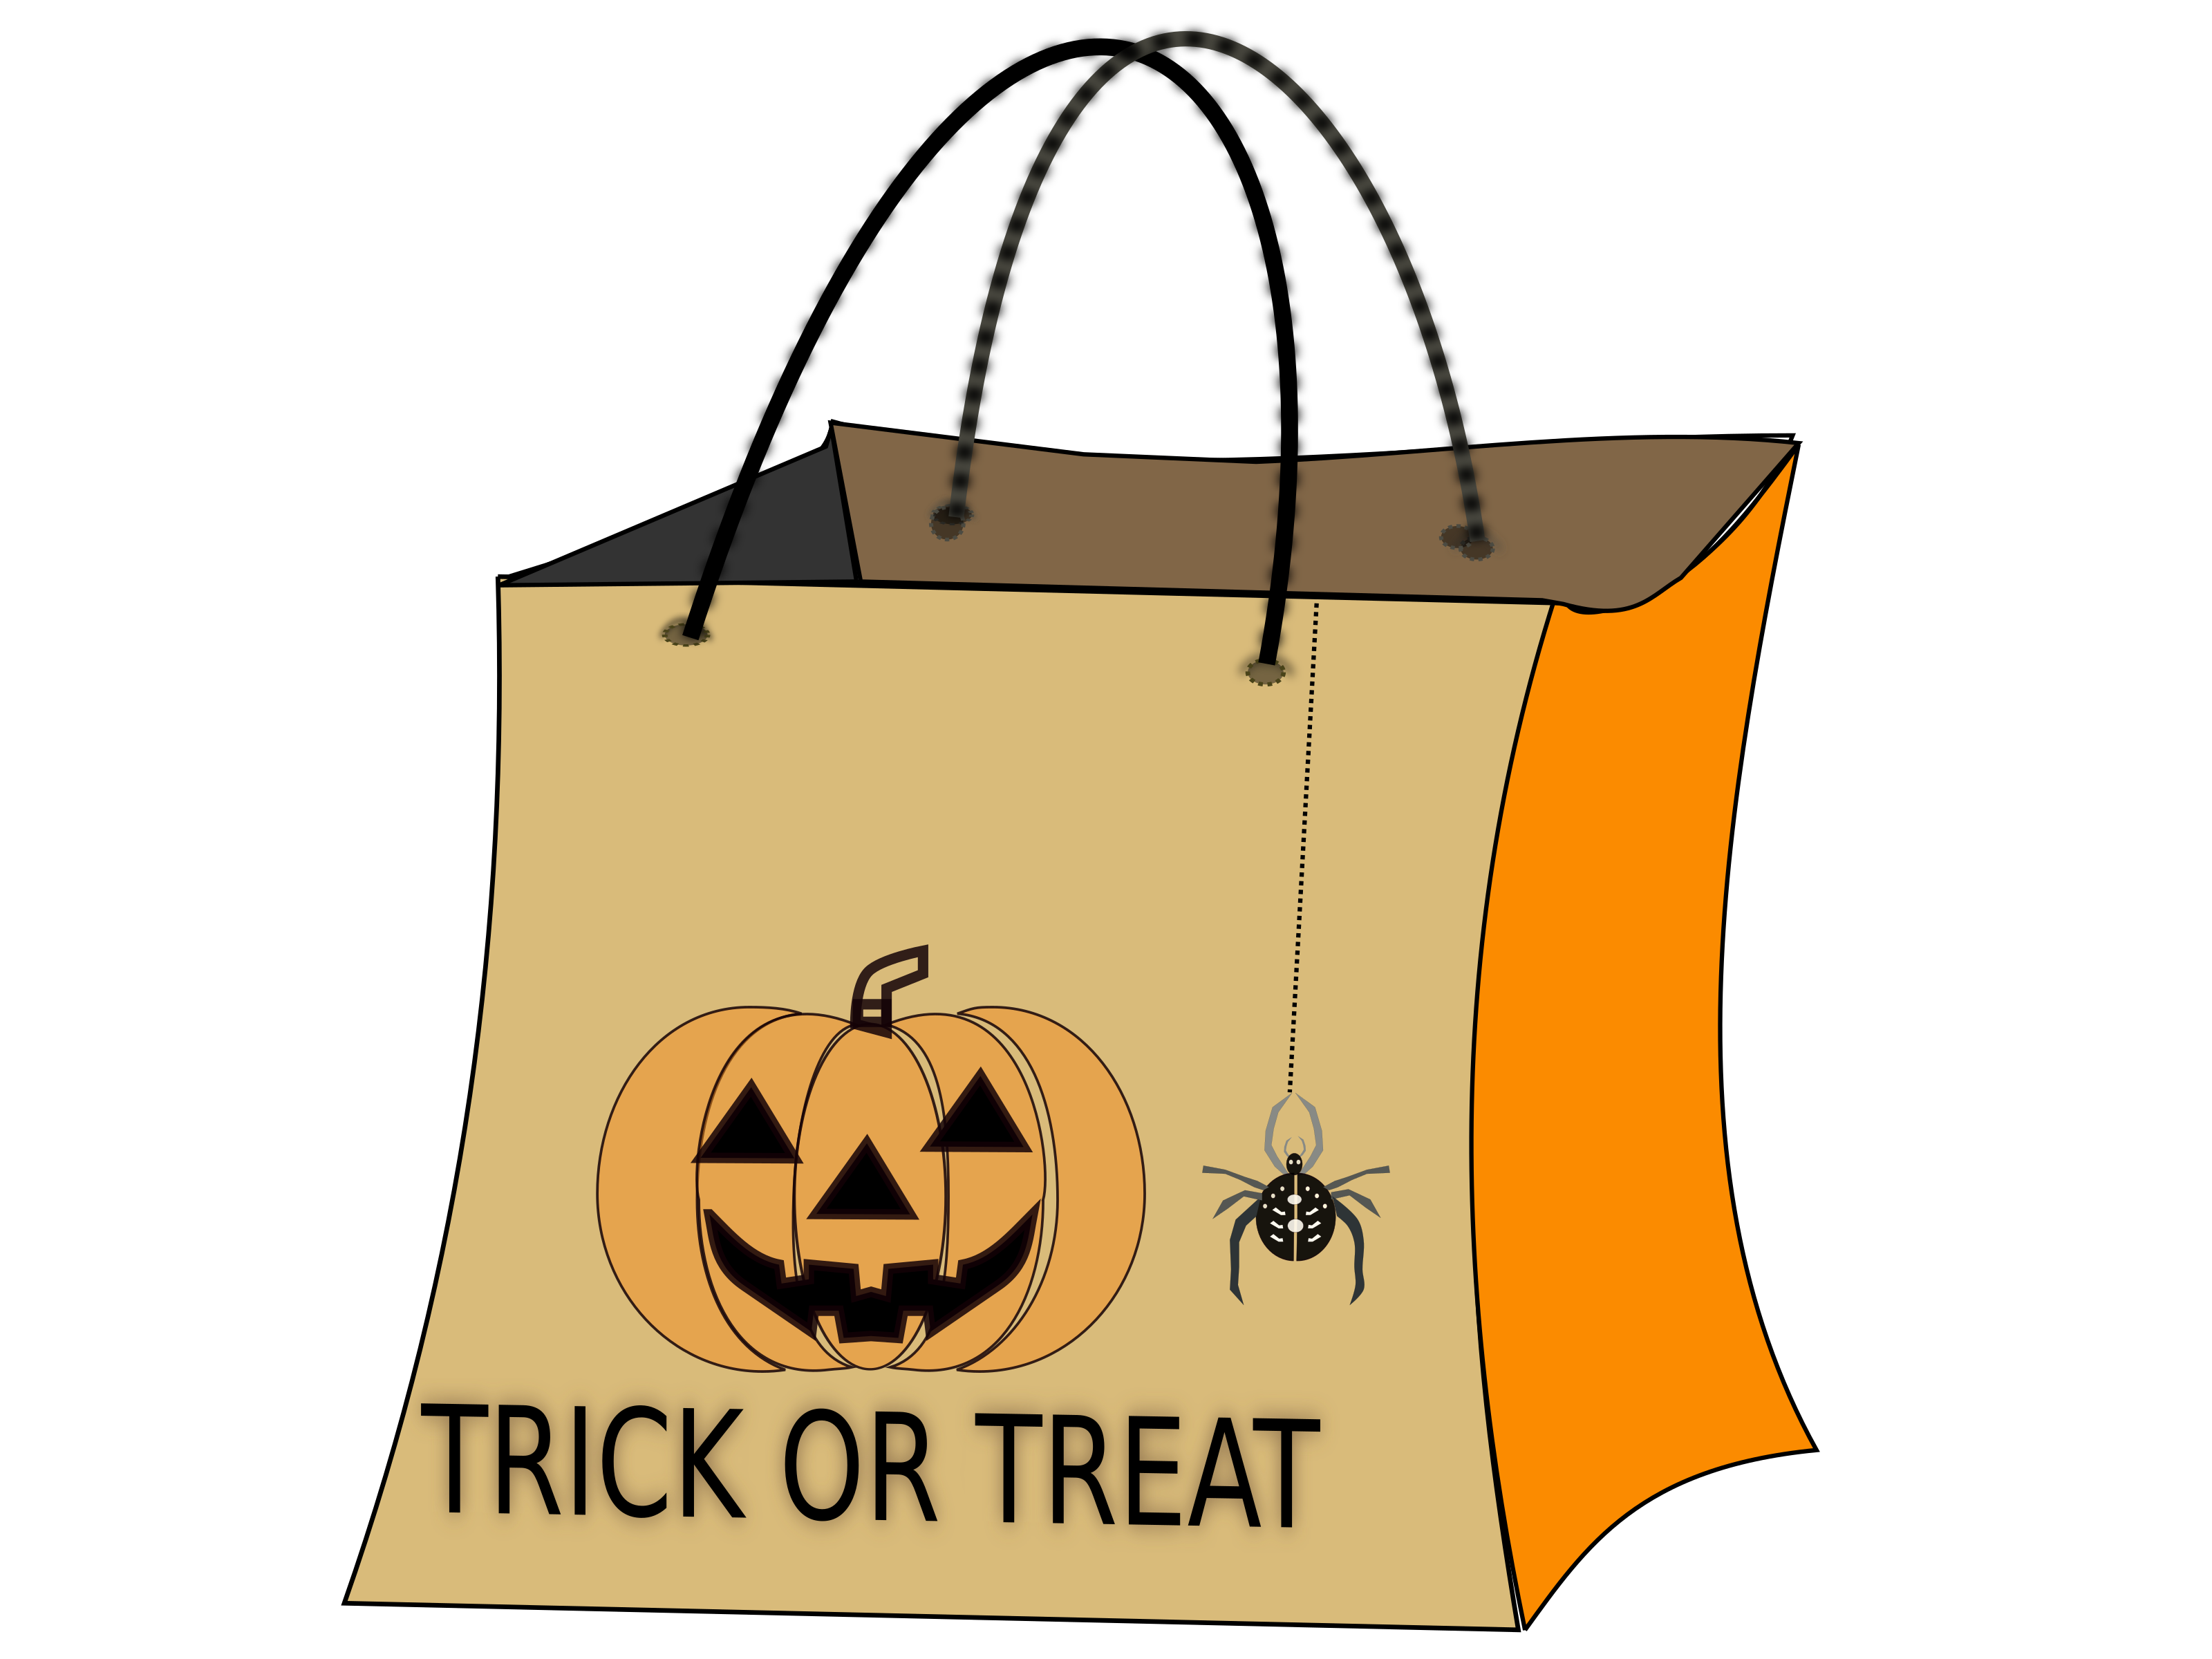 Halloween trick or treat bag clipart vector download Clipart - TRICK OR TREAT BAG vector download